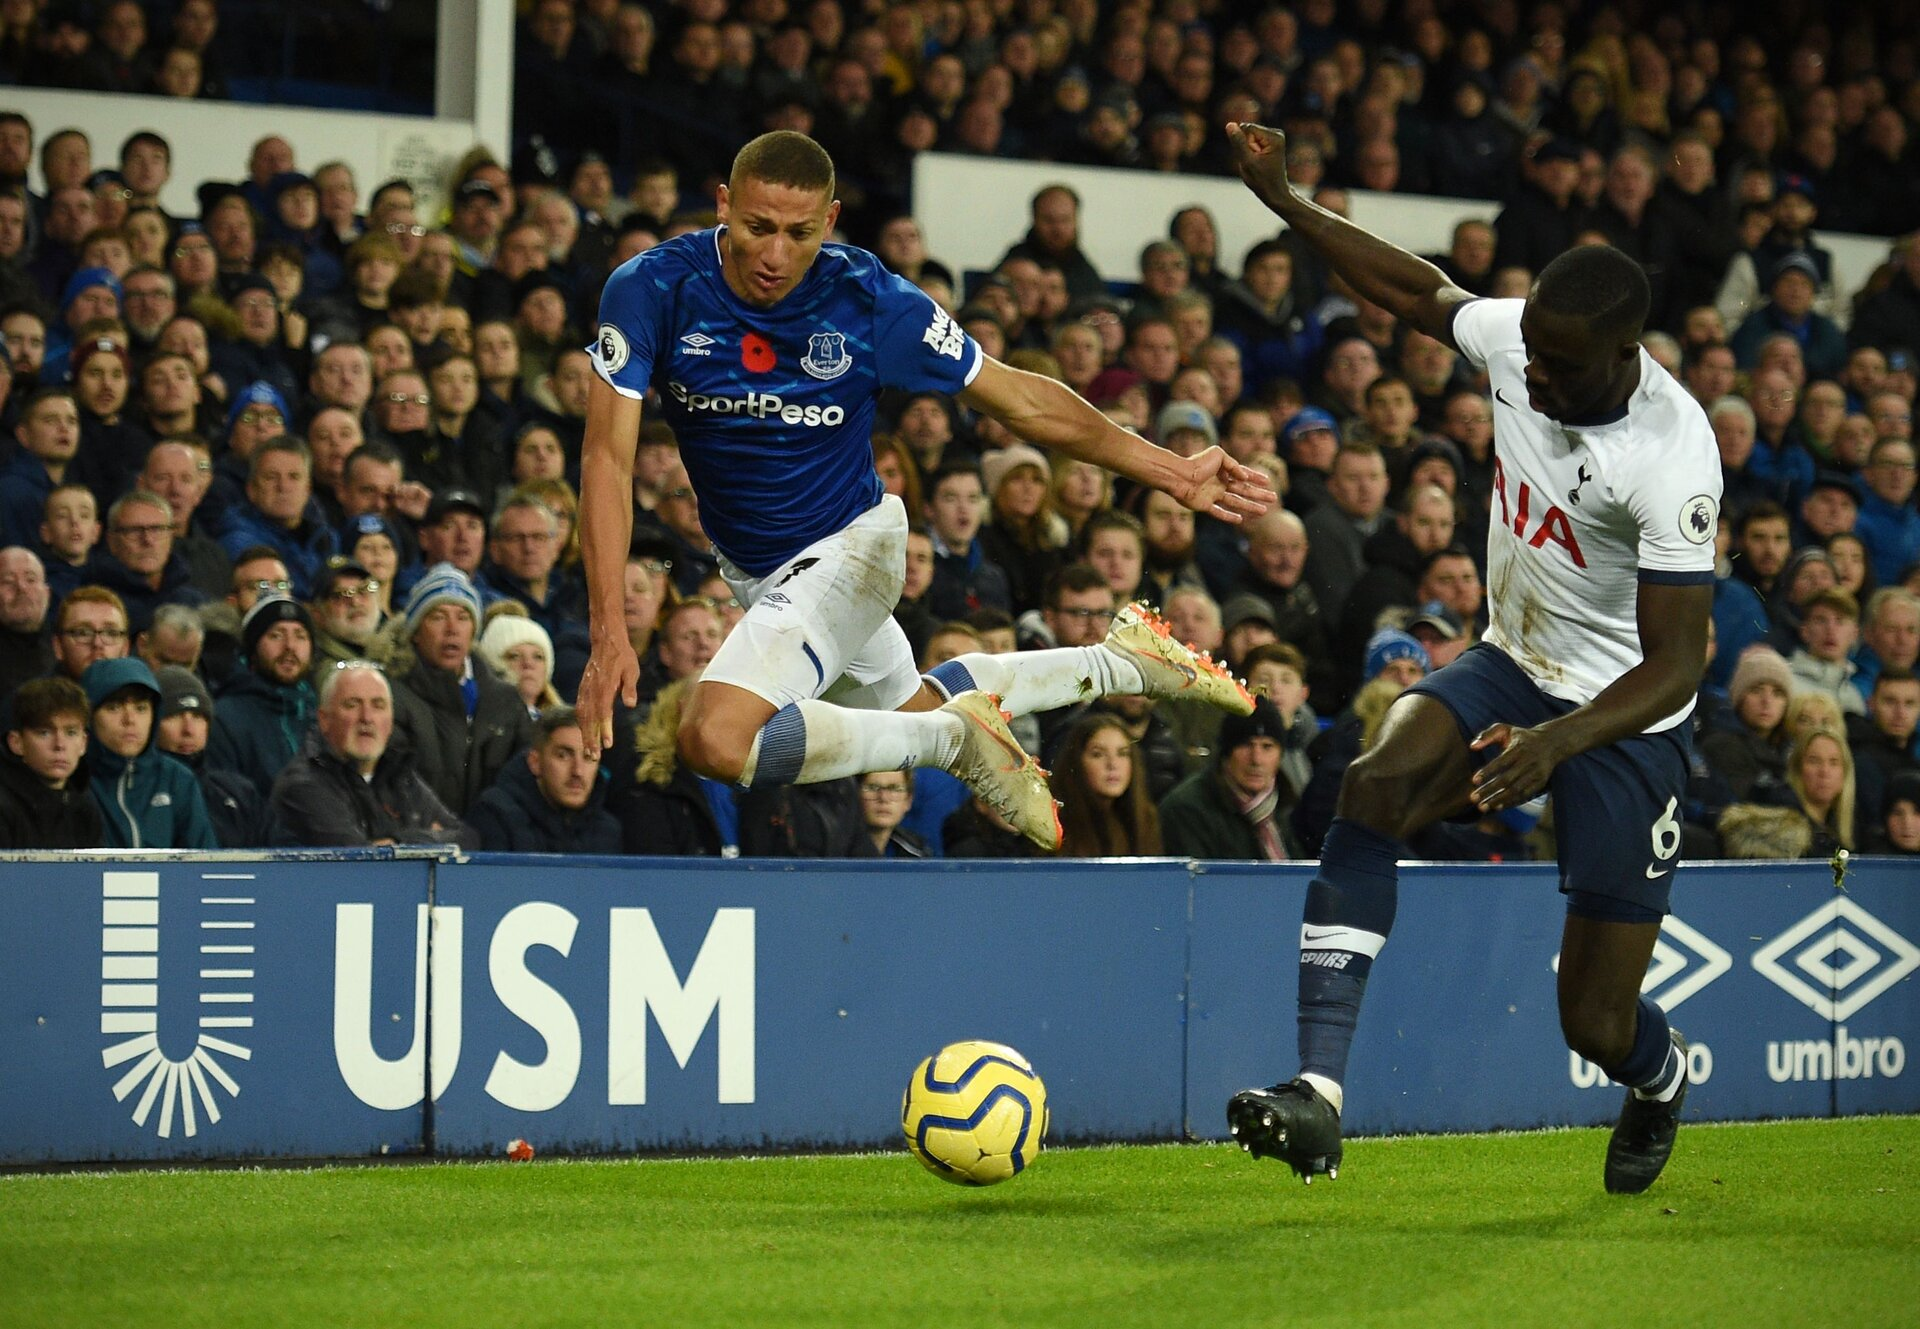 Everton's Brazilian striker Richarlison (L) vies with Tottenham Hotspur's Colombian defender Davinson Sanchez (R) during the English Premier League football match between Everton and Tottenham Hotspur at Goodison Park in Liverpool, north west England on November 3, 2019. (Photo by Oli SCARFF / AFP) / RESTRICTED TO EDITORIAL USE. No use with unauthorized audio, video, data, fixture lists, club/league logos or 'live' services. Online in-match use limited to 120 images. An additional 40 images may be used in extra time. No video emulation. Social media in-match use limited to 120 images. An additional 40 images may be used in extra time. No use in betting publications, games or single club/league/player publications. /  (Photo by OLI SCARFF/AFP via Getty Images)